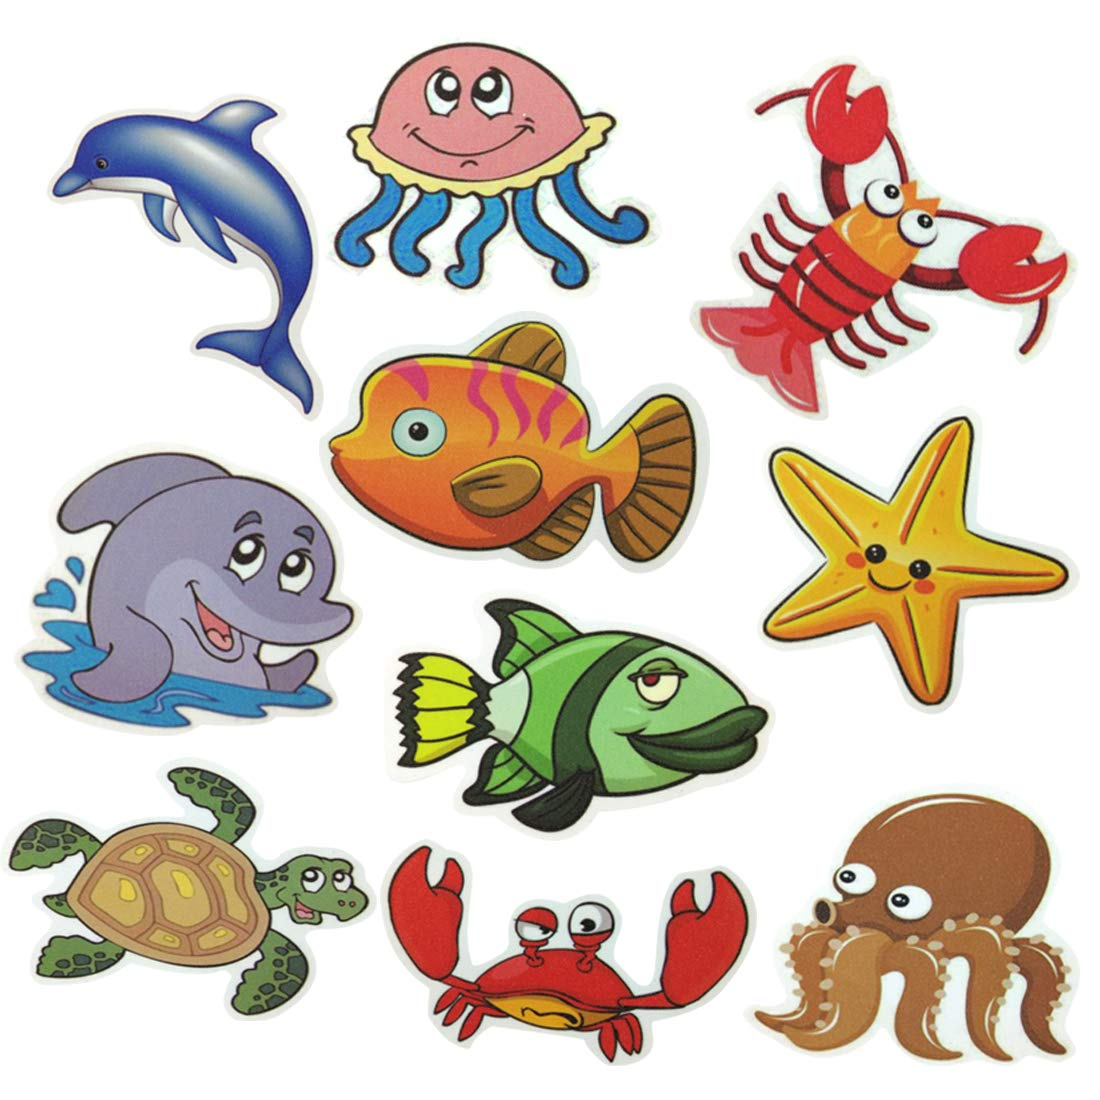 Haulonda Non-Slip Bathtub Stickers,Sea Creature Safety Shower Decals,Adhesive Anti-Slip Appliques for Kids Bath Tub Shower Surfaces(10pcs) (10PCS-A)